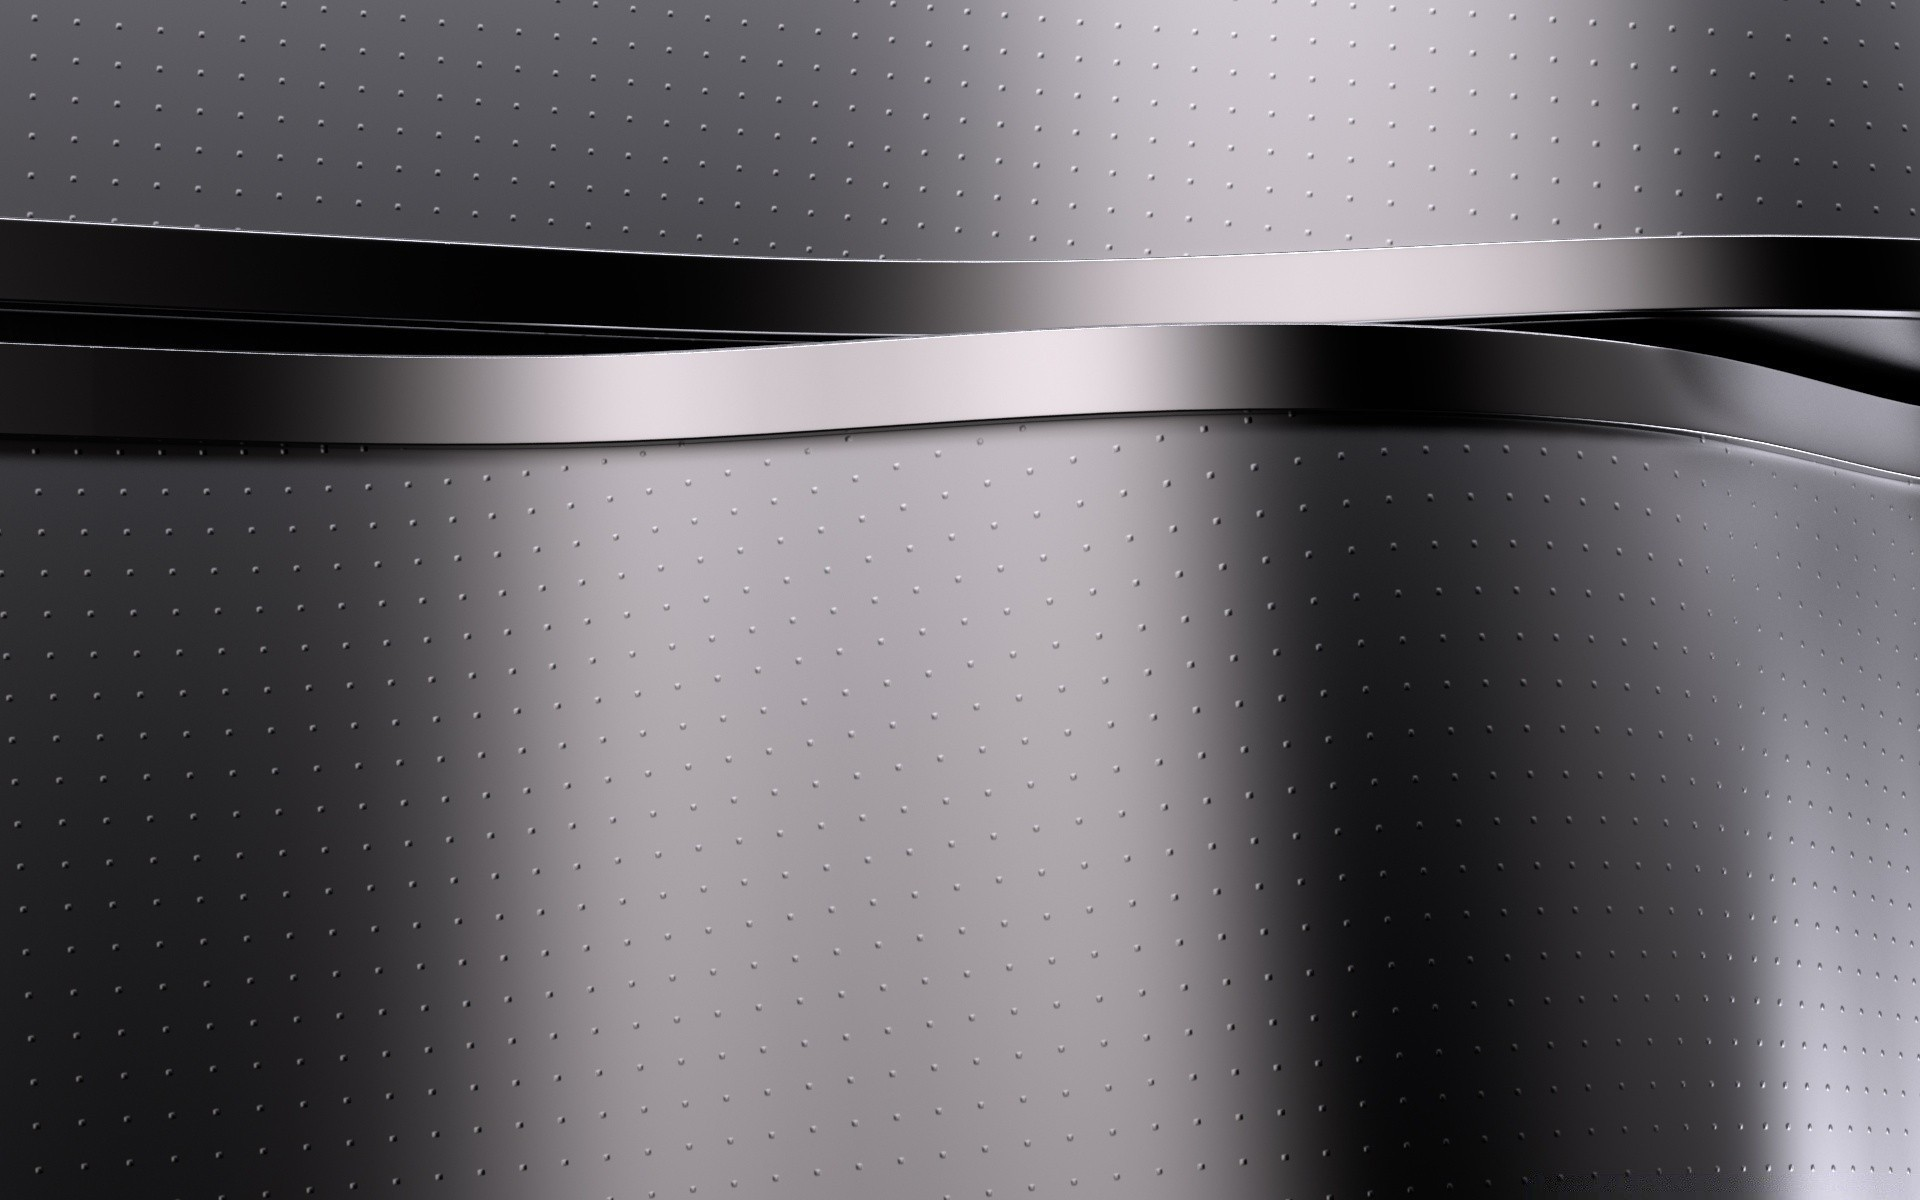 Stainless Steel Looking Wallpaper 38 Images